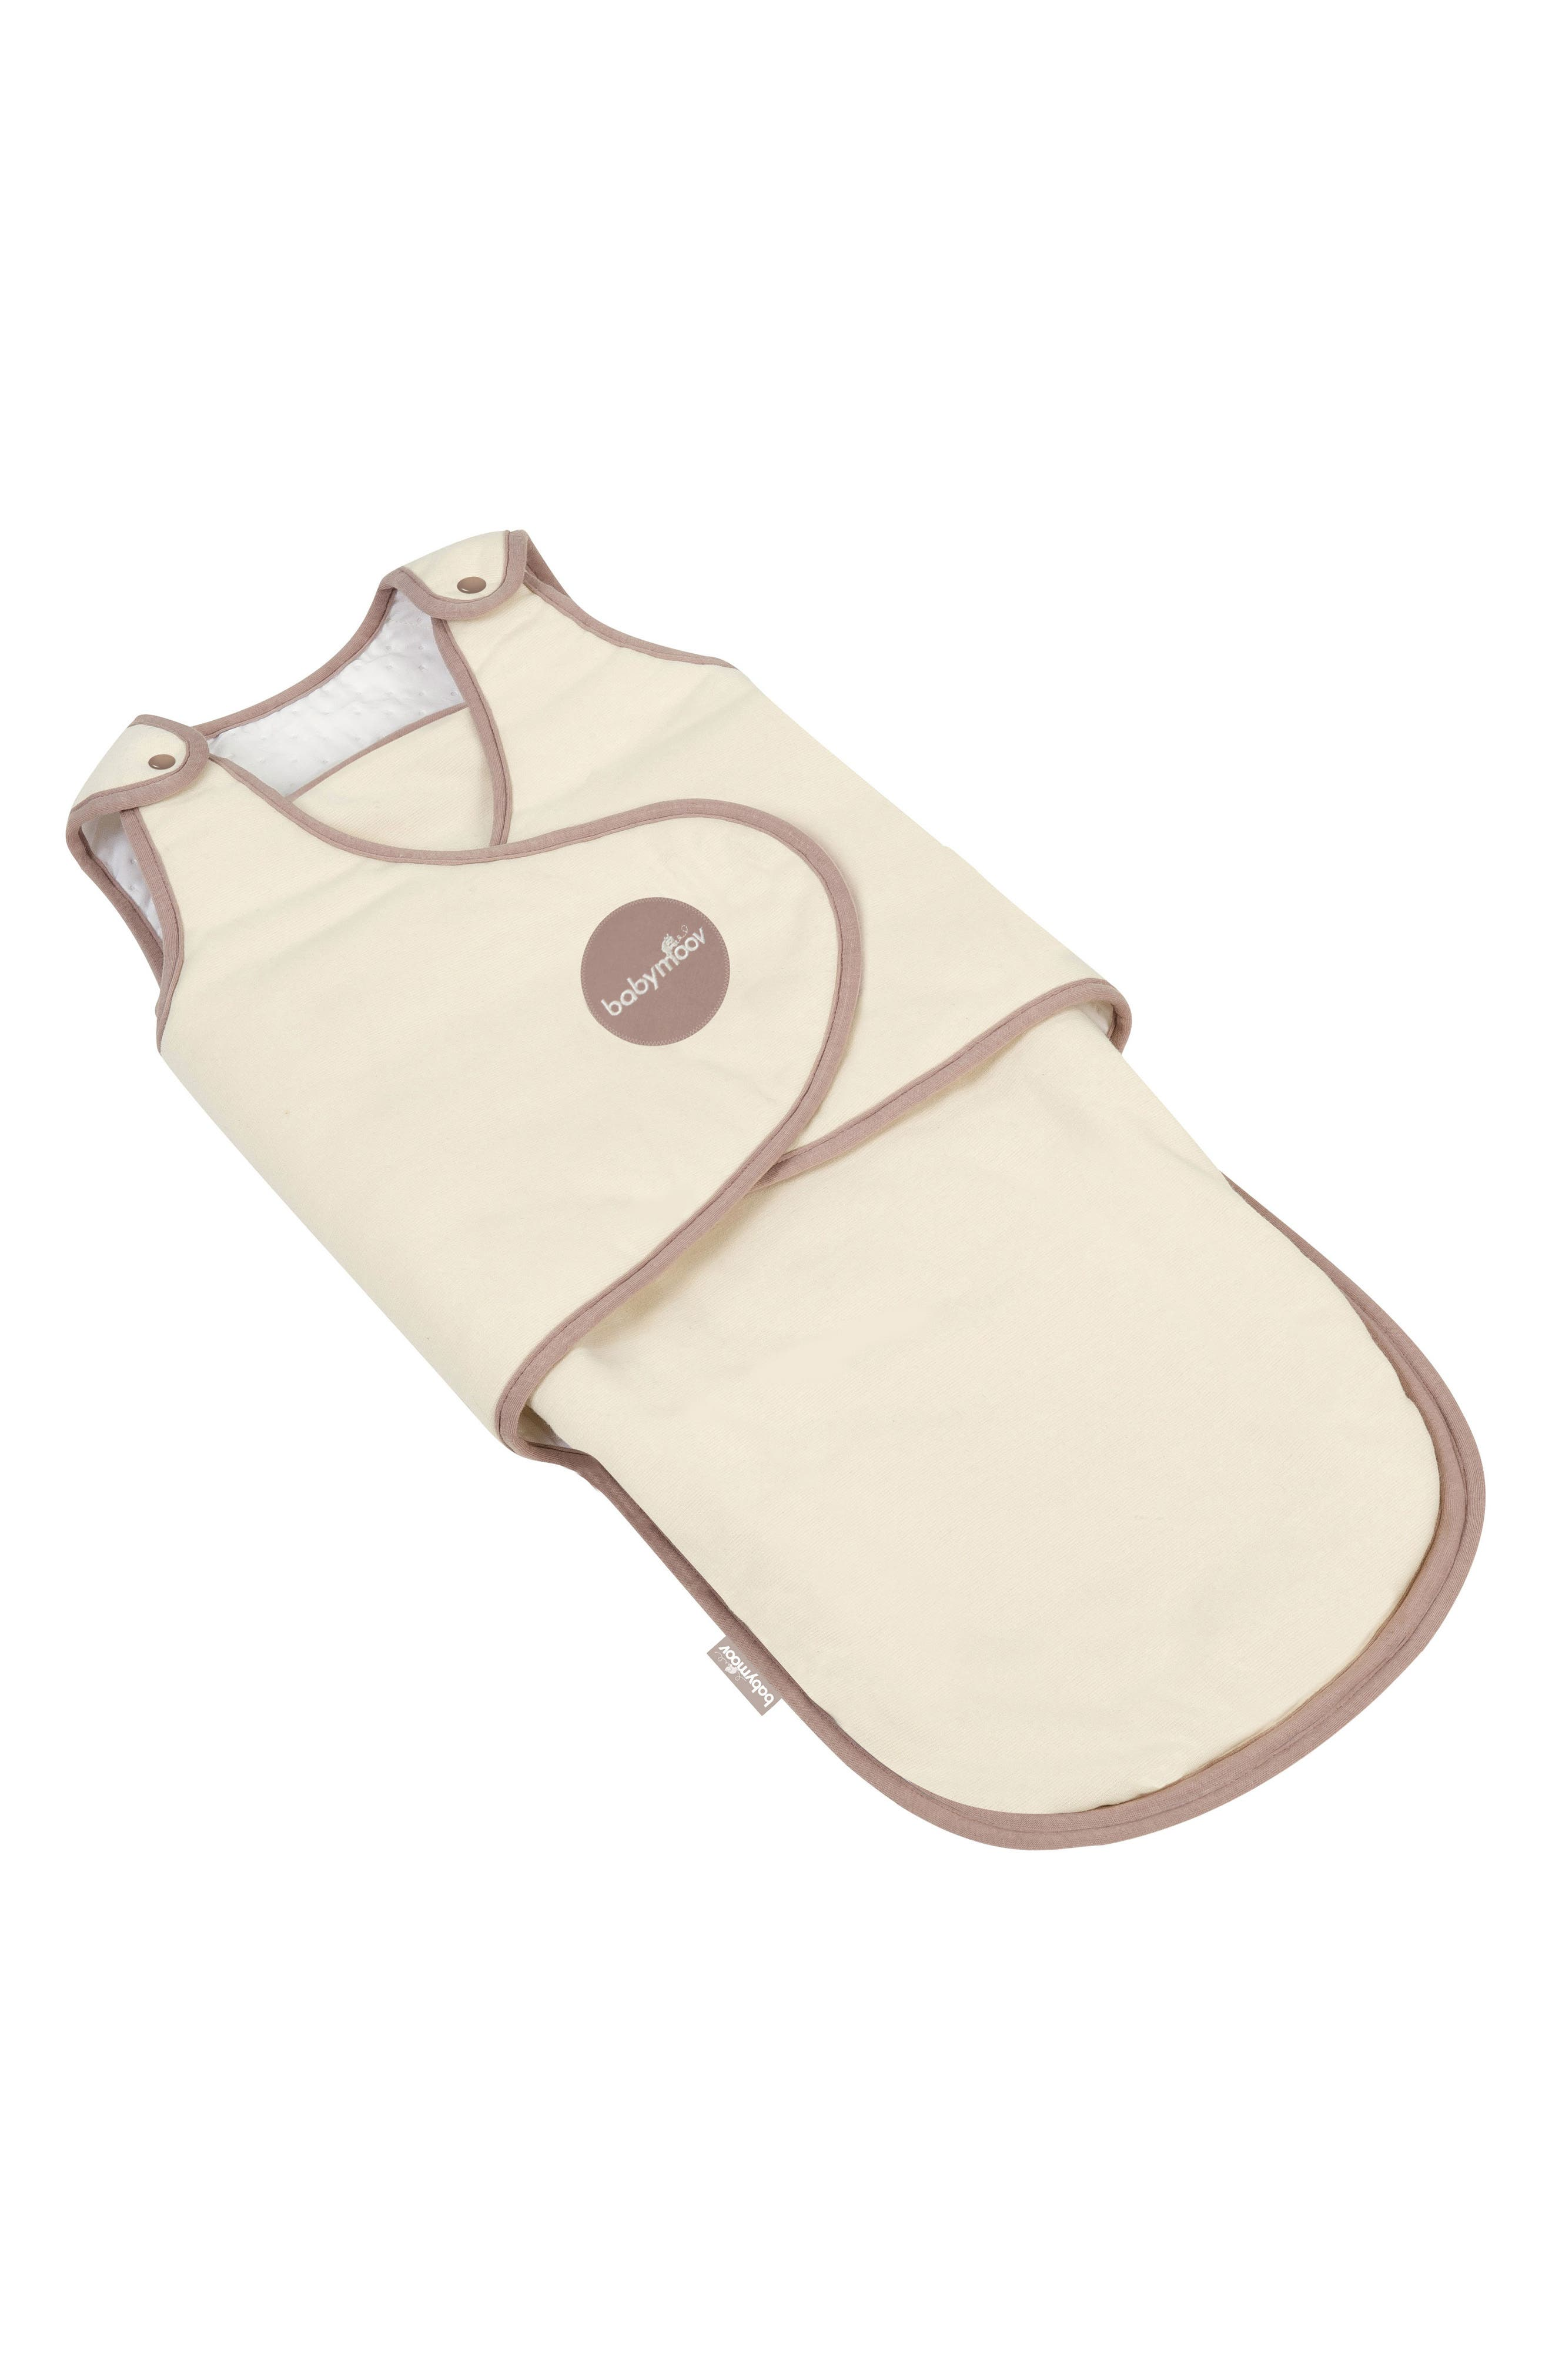 CosyBag Swaddle Wrap Blanket,                         Main,                         color, CREAM